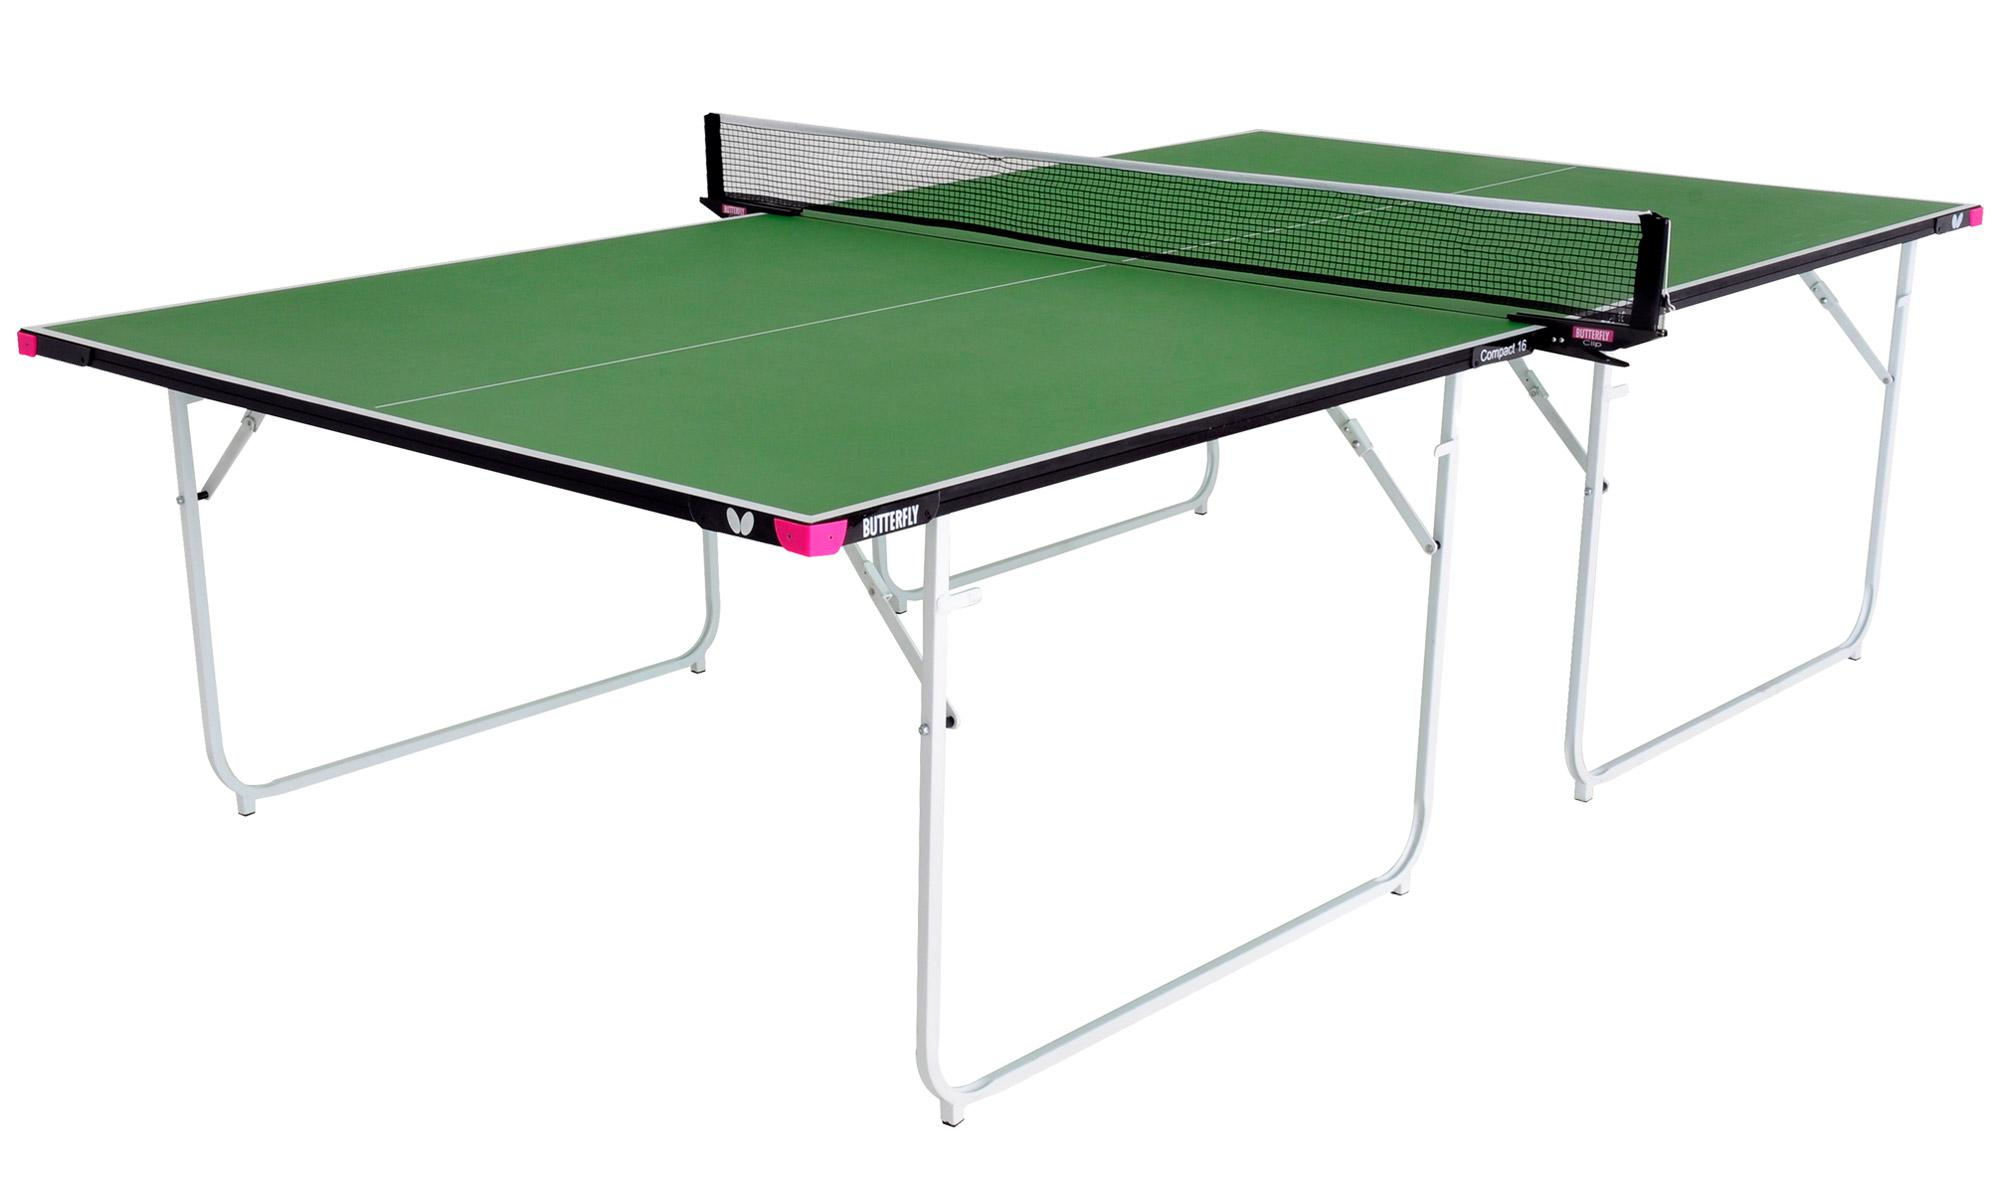 Butterfly compact 16 indoor table tennis table - Full size table tennis table dimensions ...